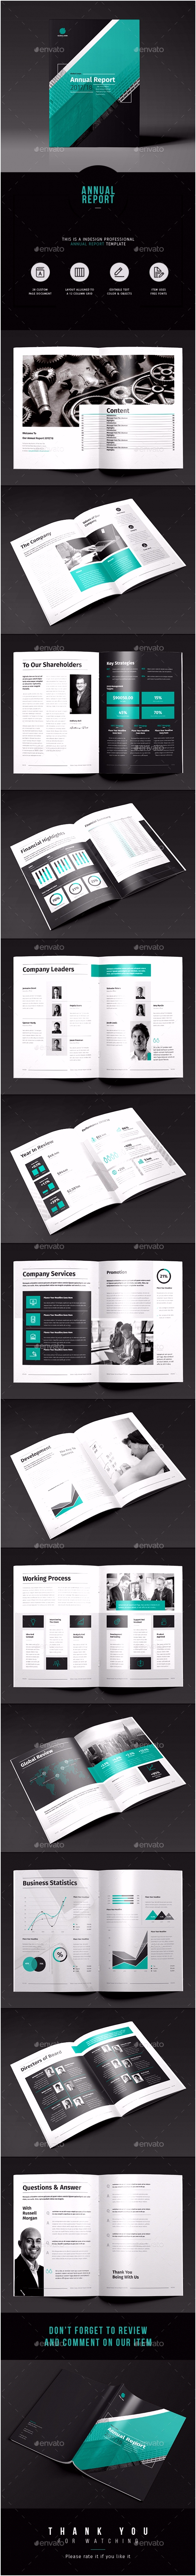 Pin by DesignsHub on Annual Report Template